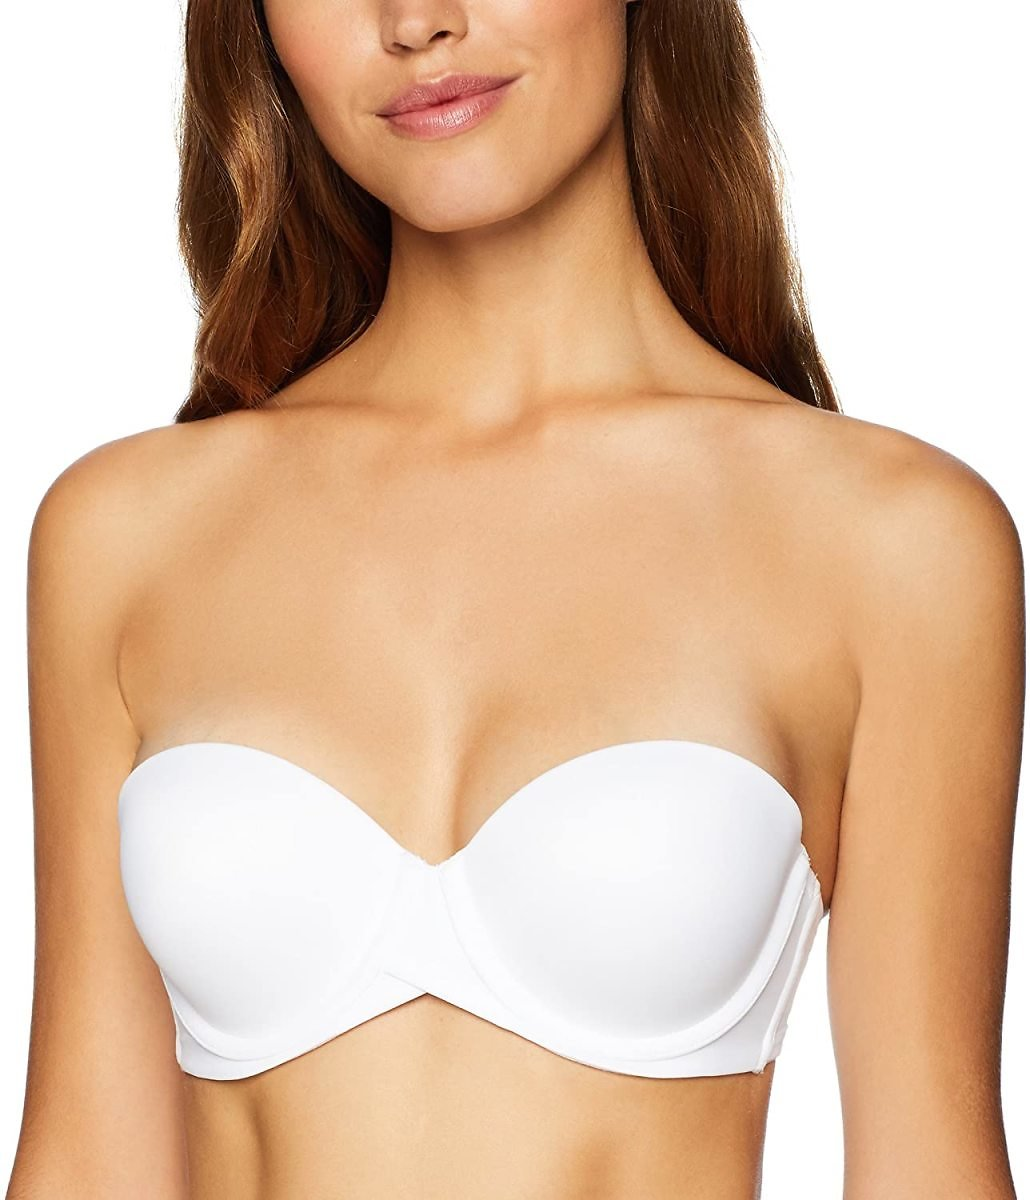 Maidenform Self Expressions Women's Stay Put Strapless with Lift Bra